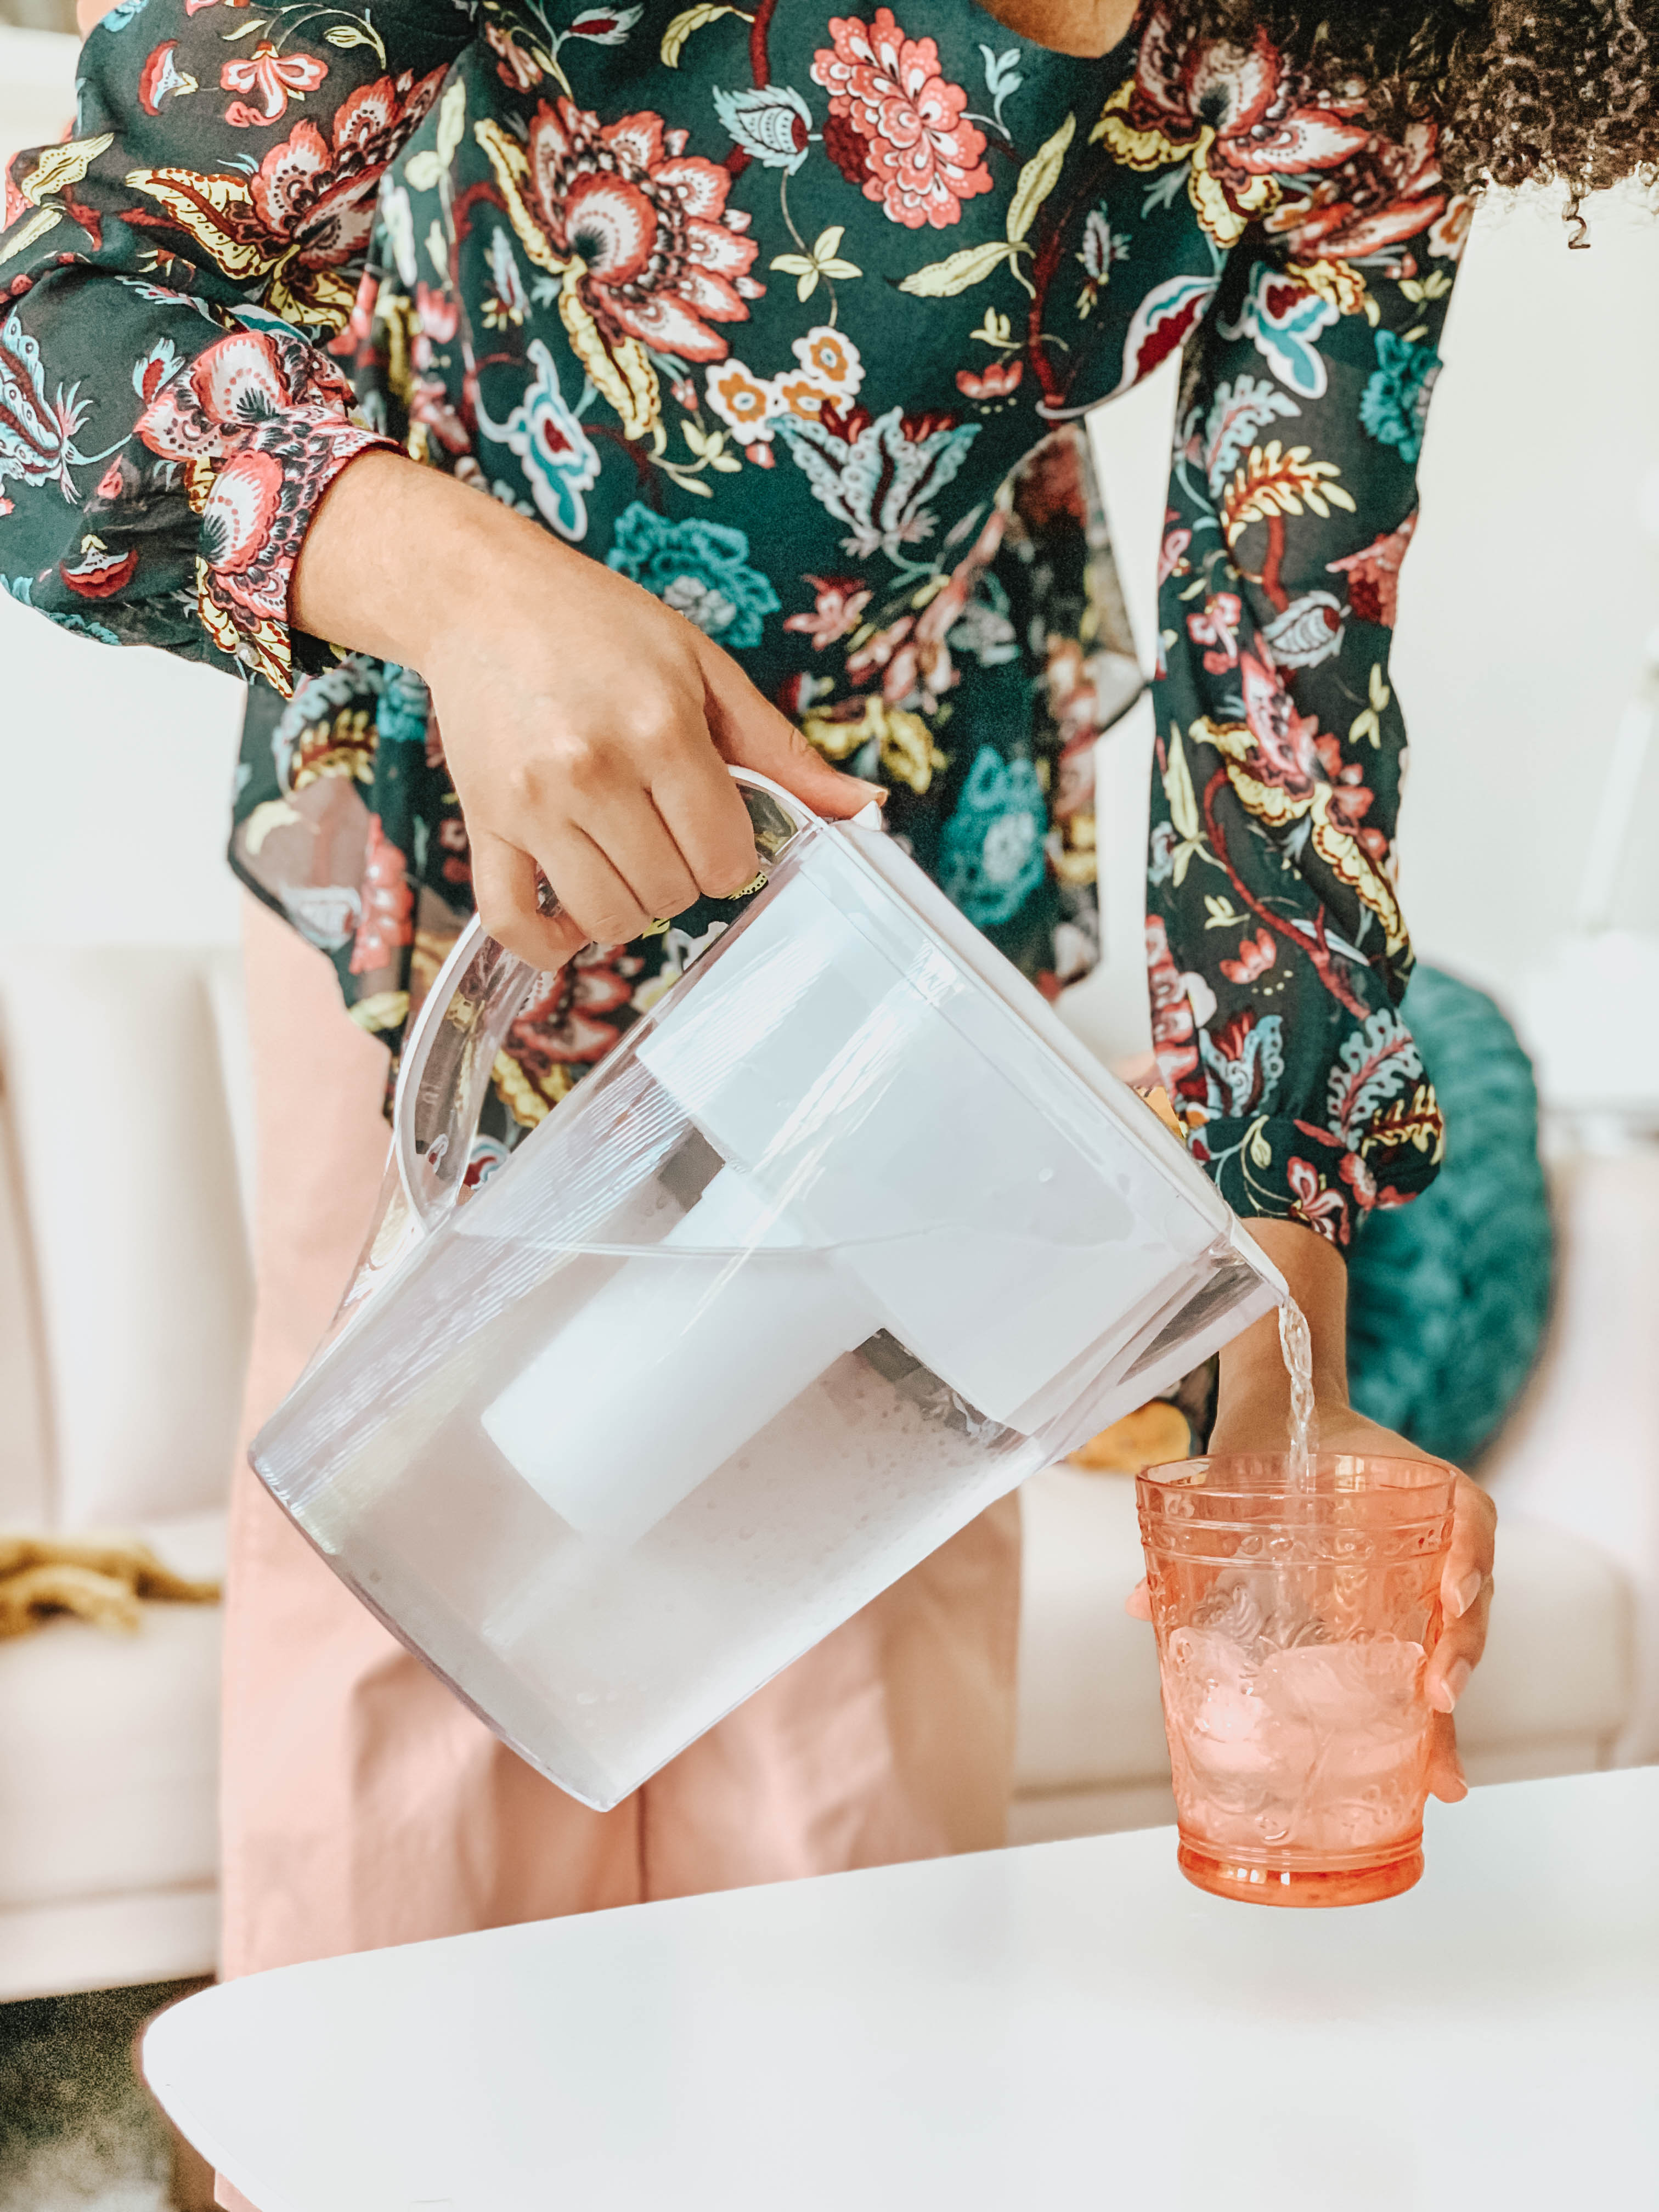 Girl pouring a cup of water with a Brita pitcher